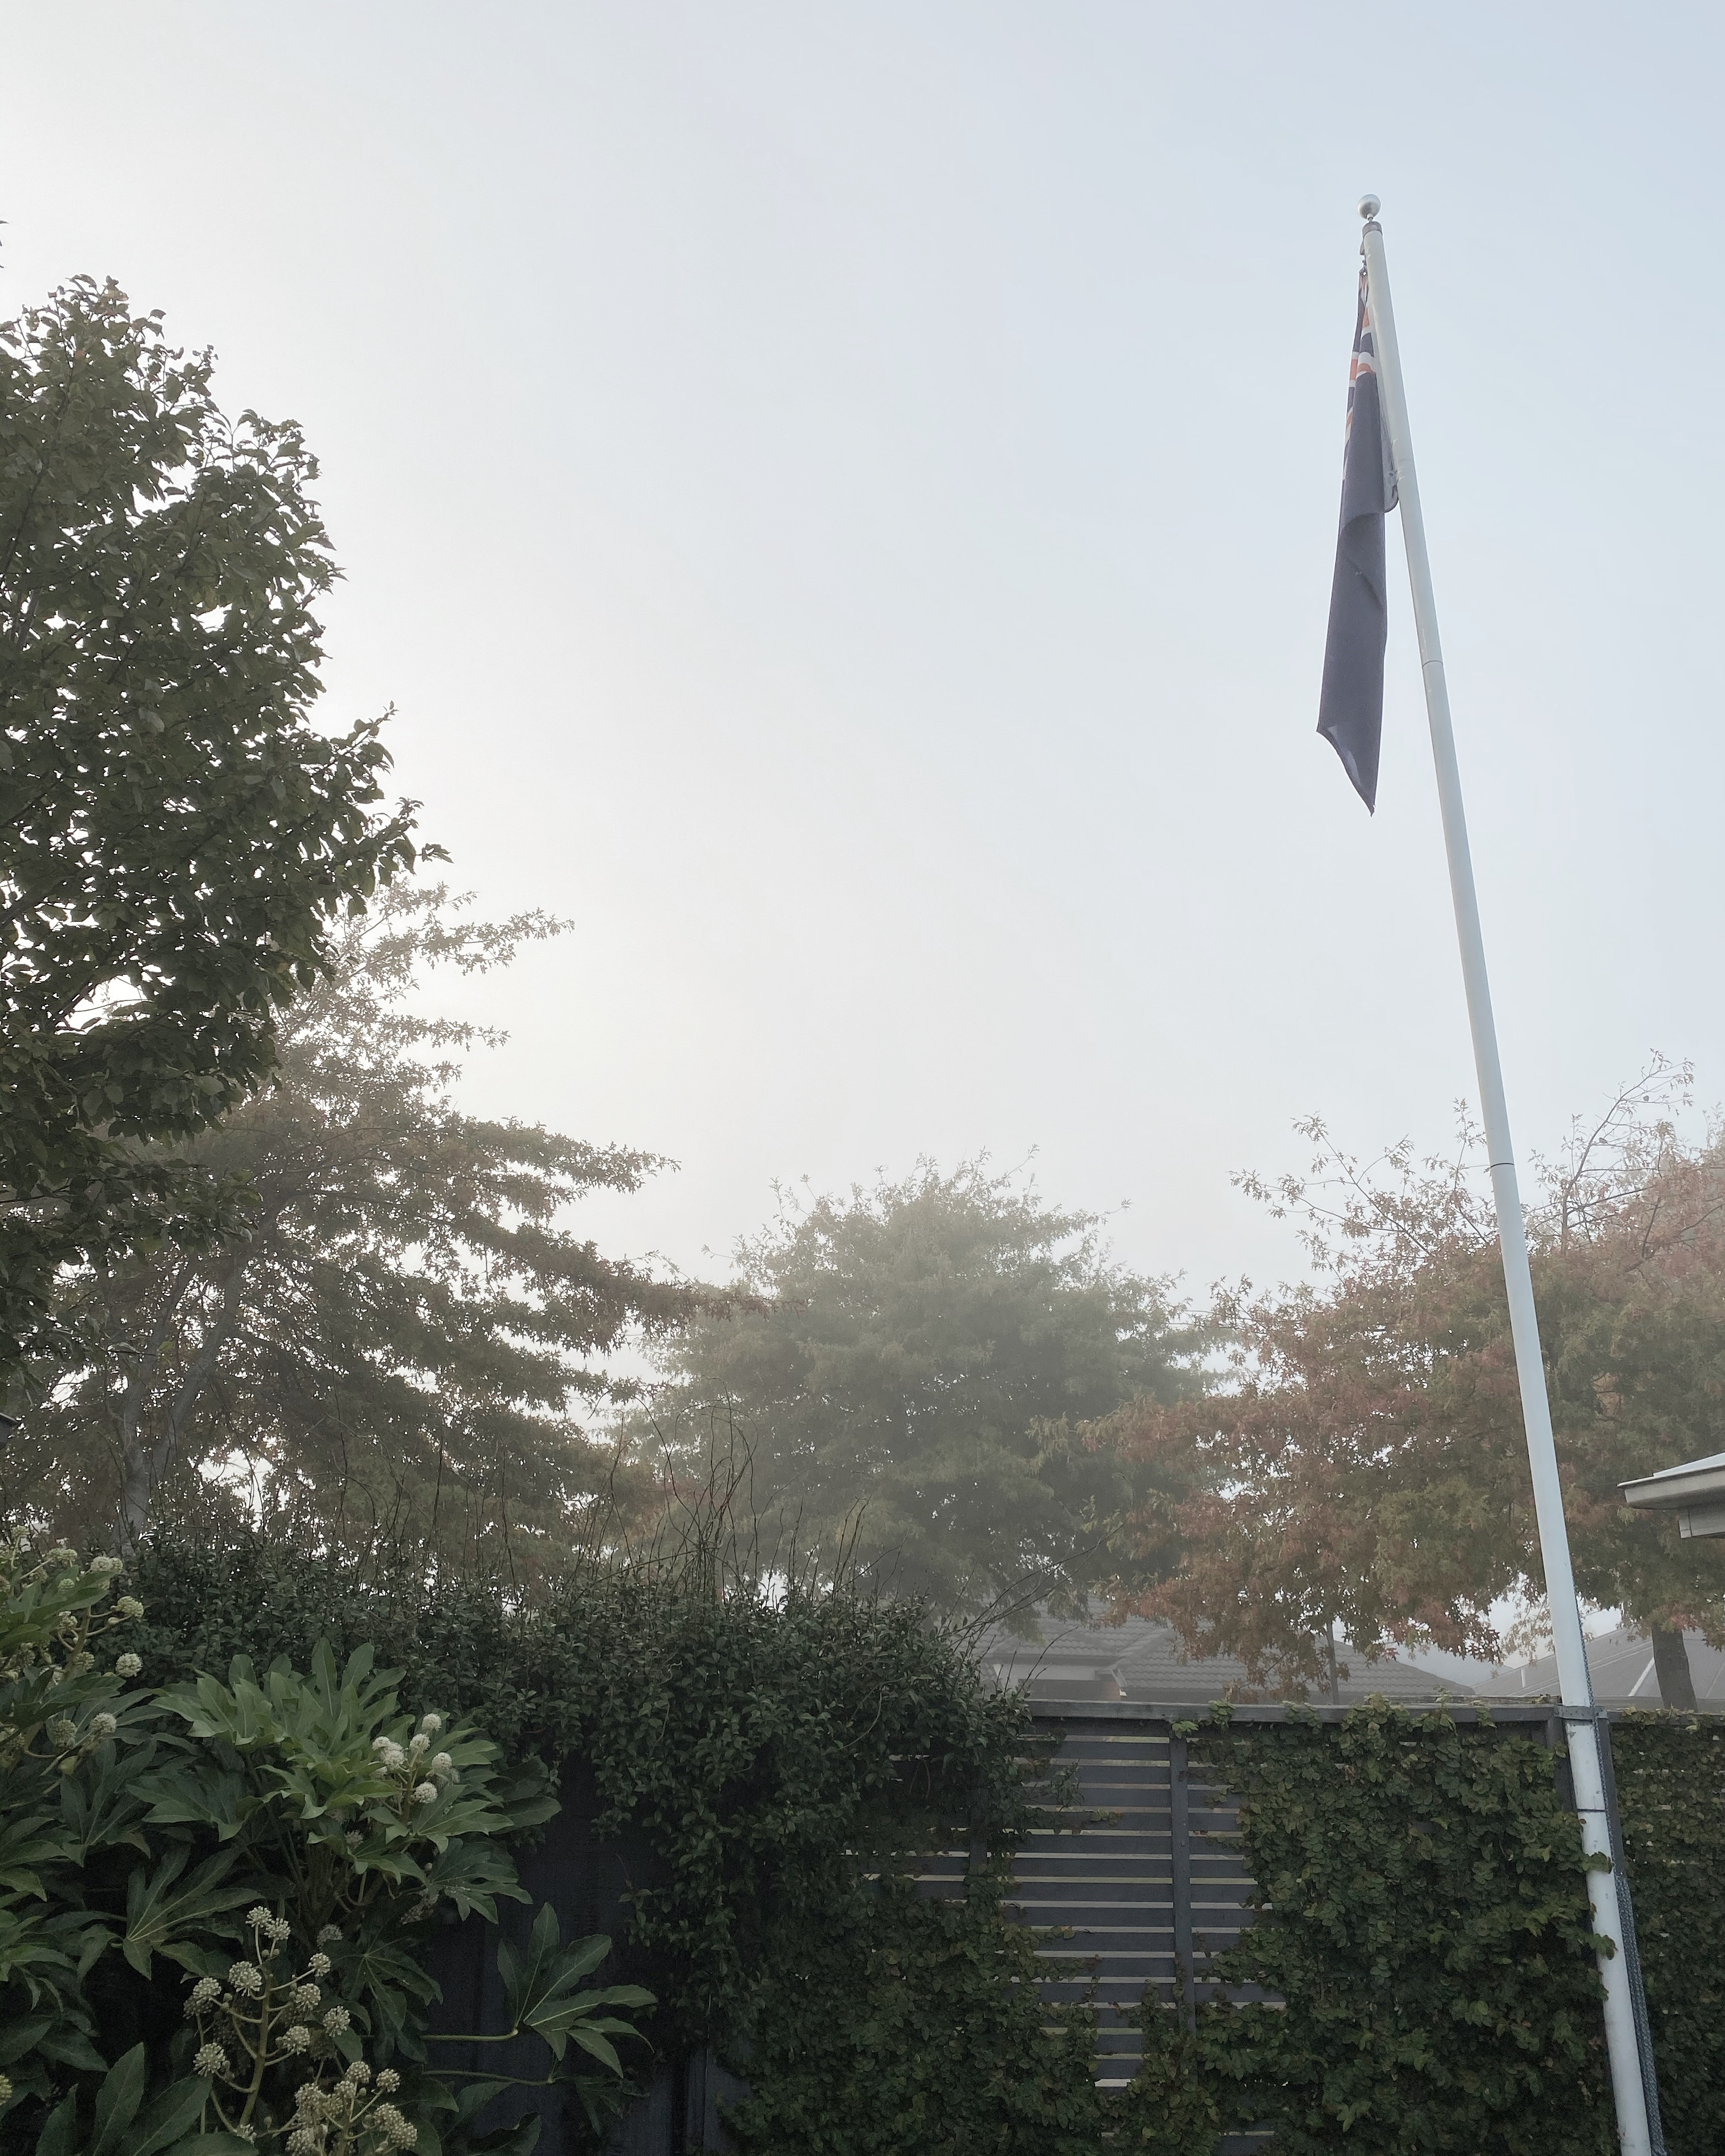 Oak trees and flag pole with New Zealand flag on it slightly obscured by fog on an autumn morning